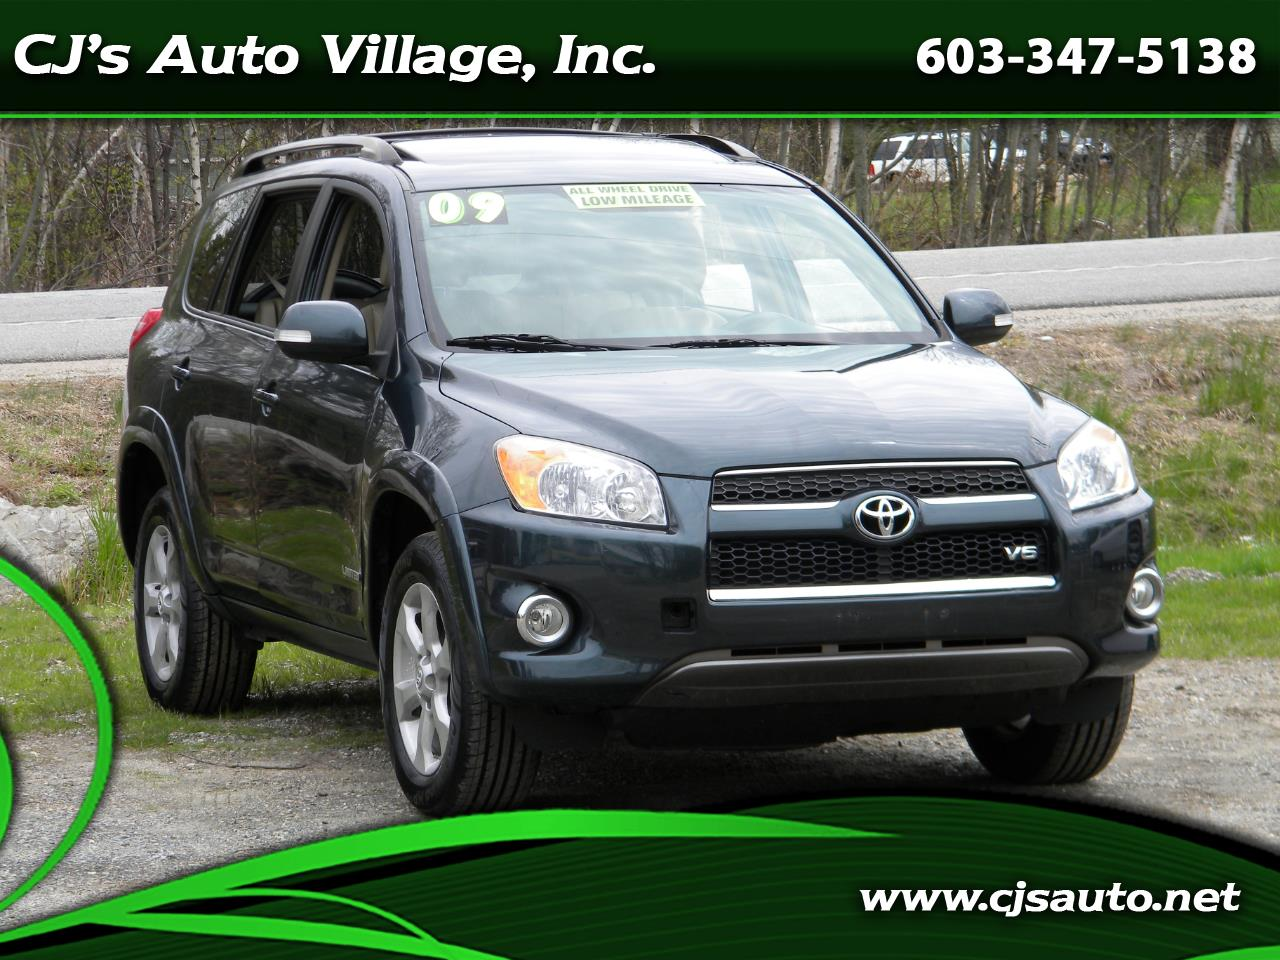 2009 Toyota RAV4 4WD 4dr V6 5-Spd AT Ltd (Natl)